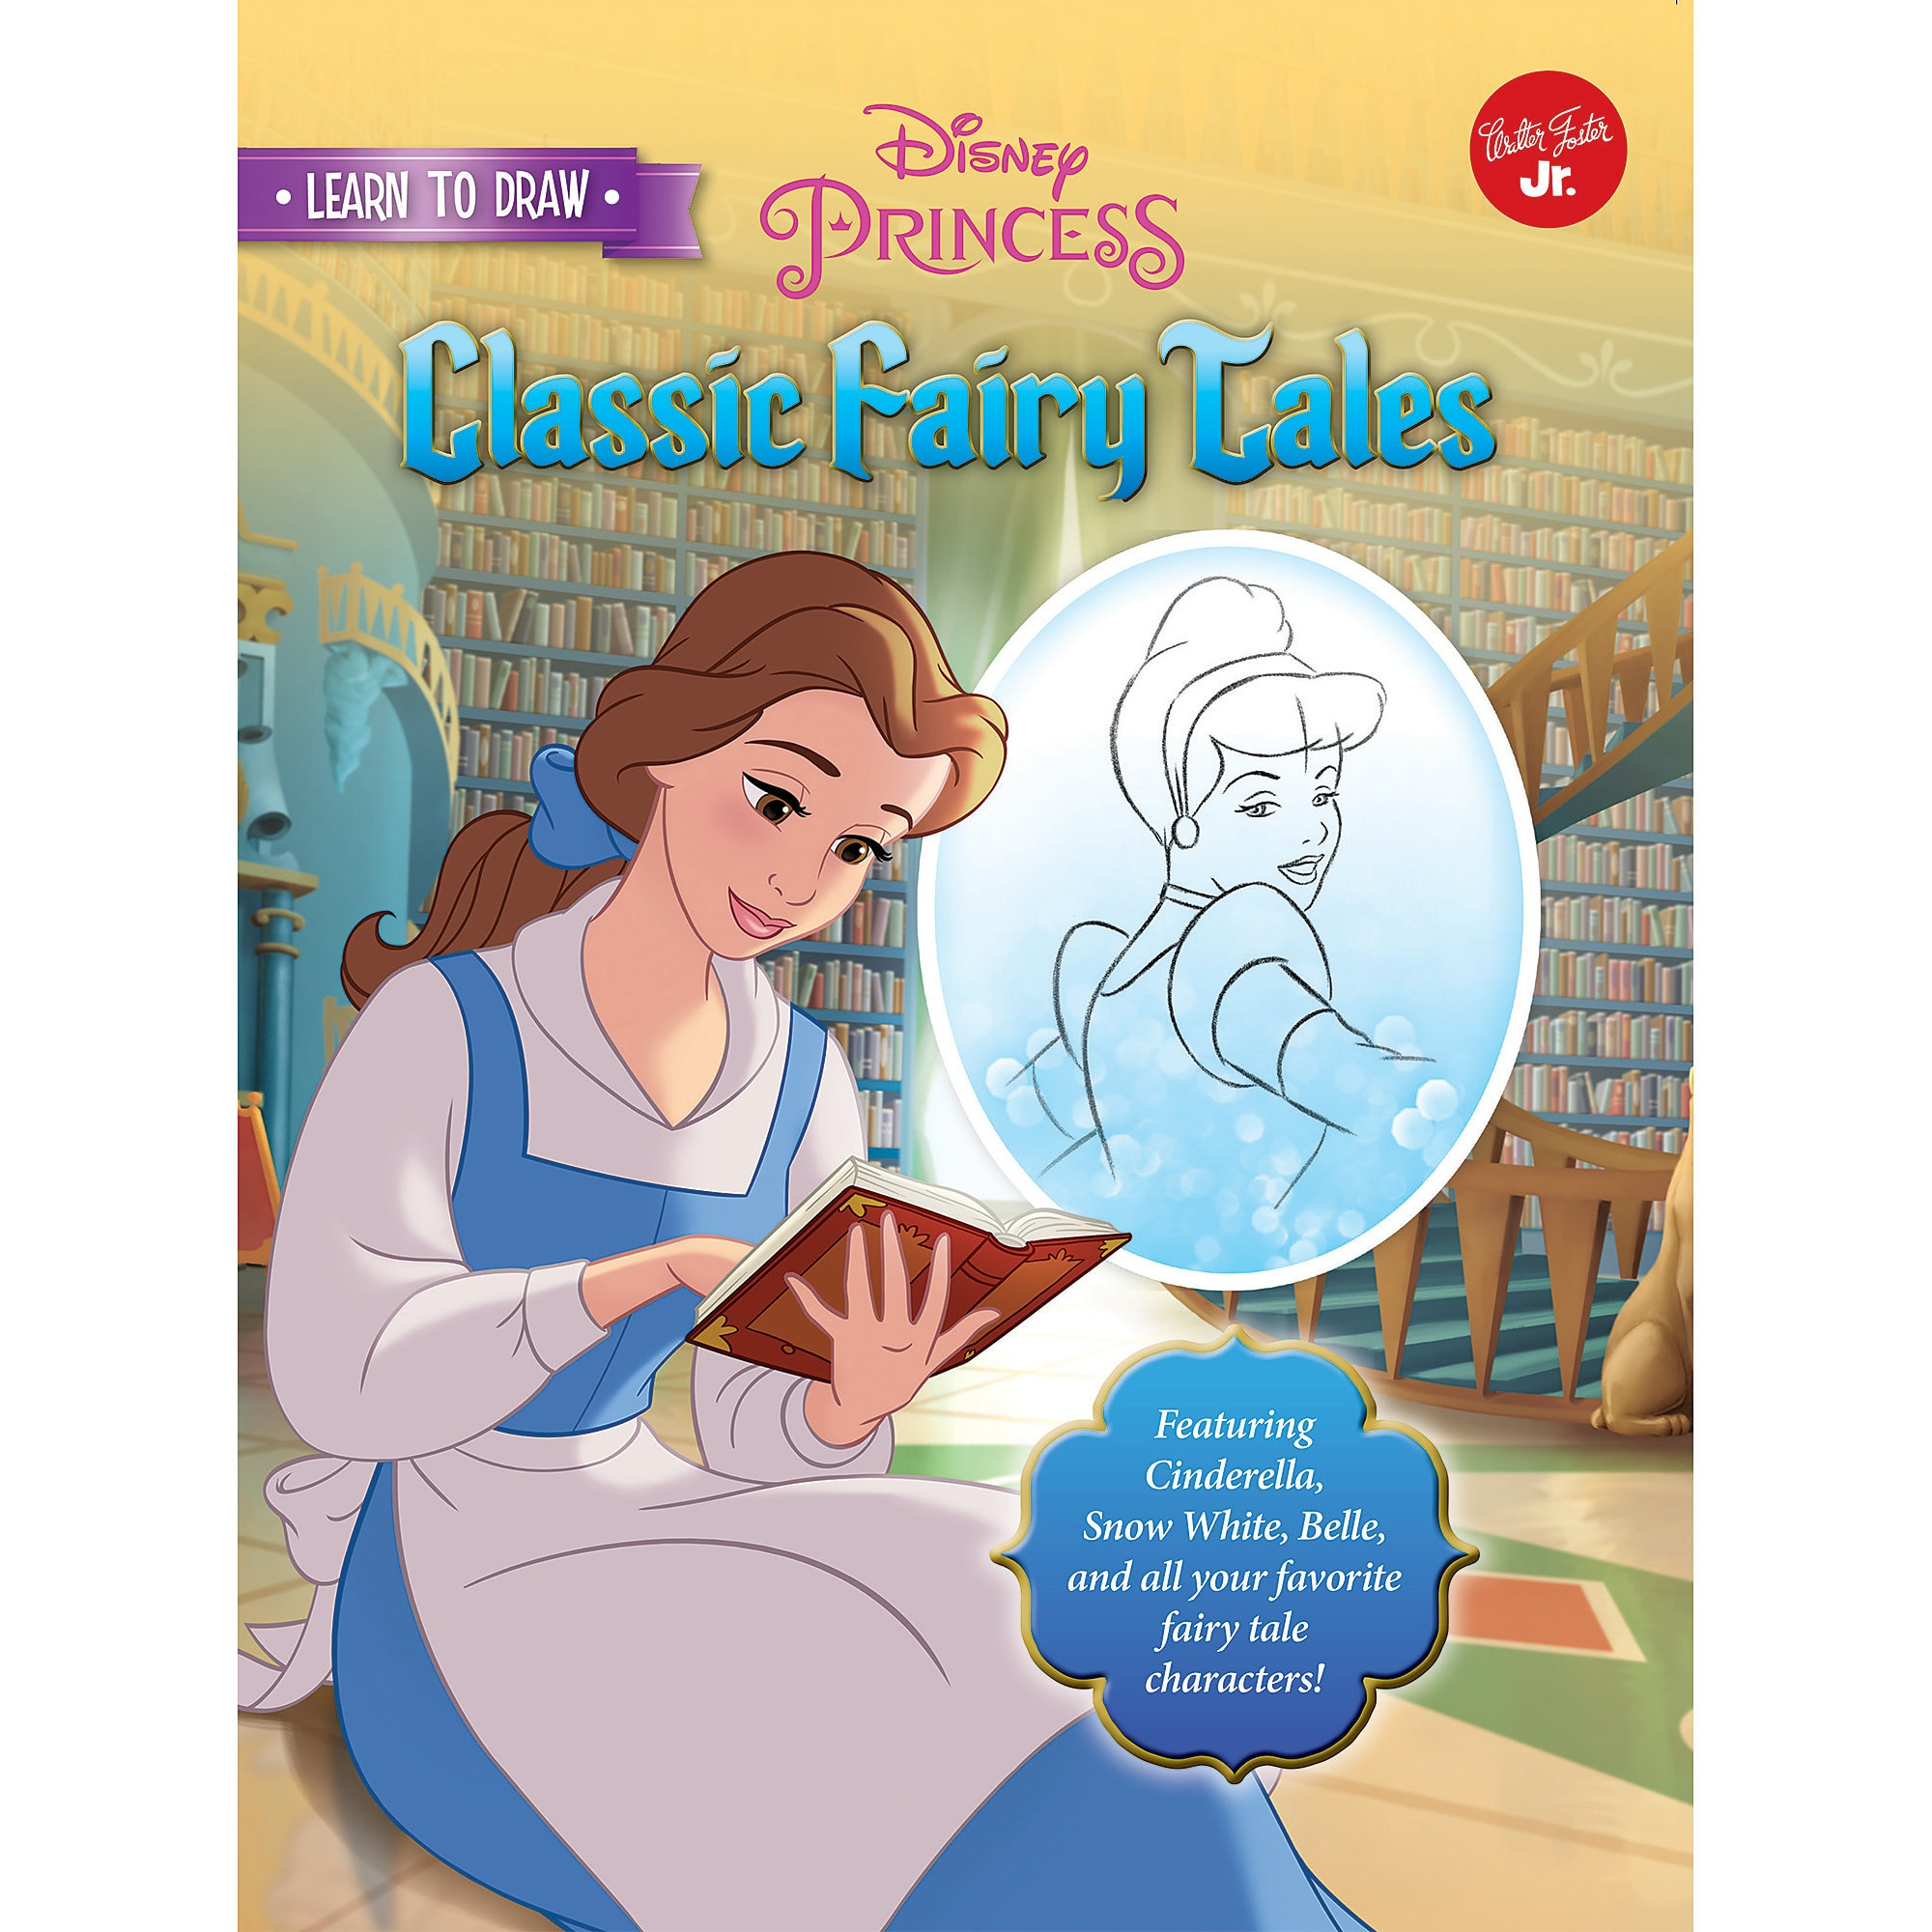 Learn to Draw Disney's Classic Fairytales